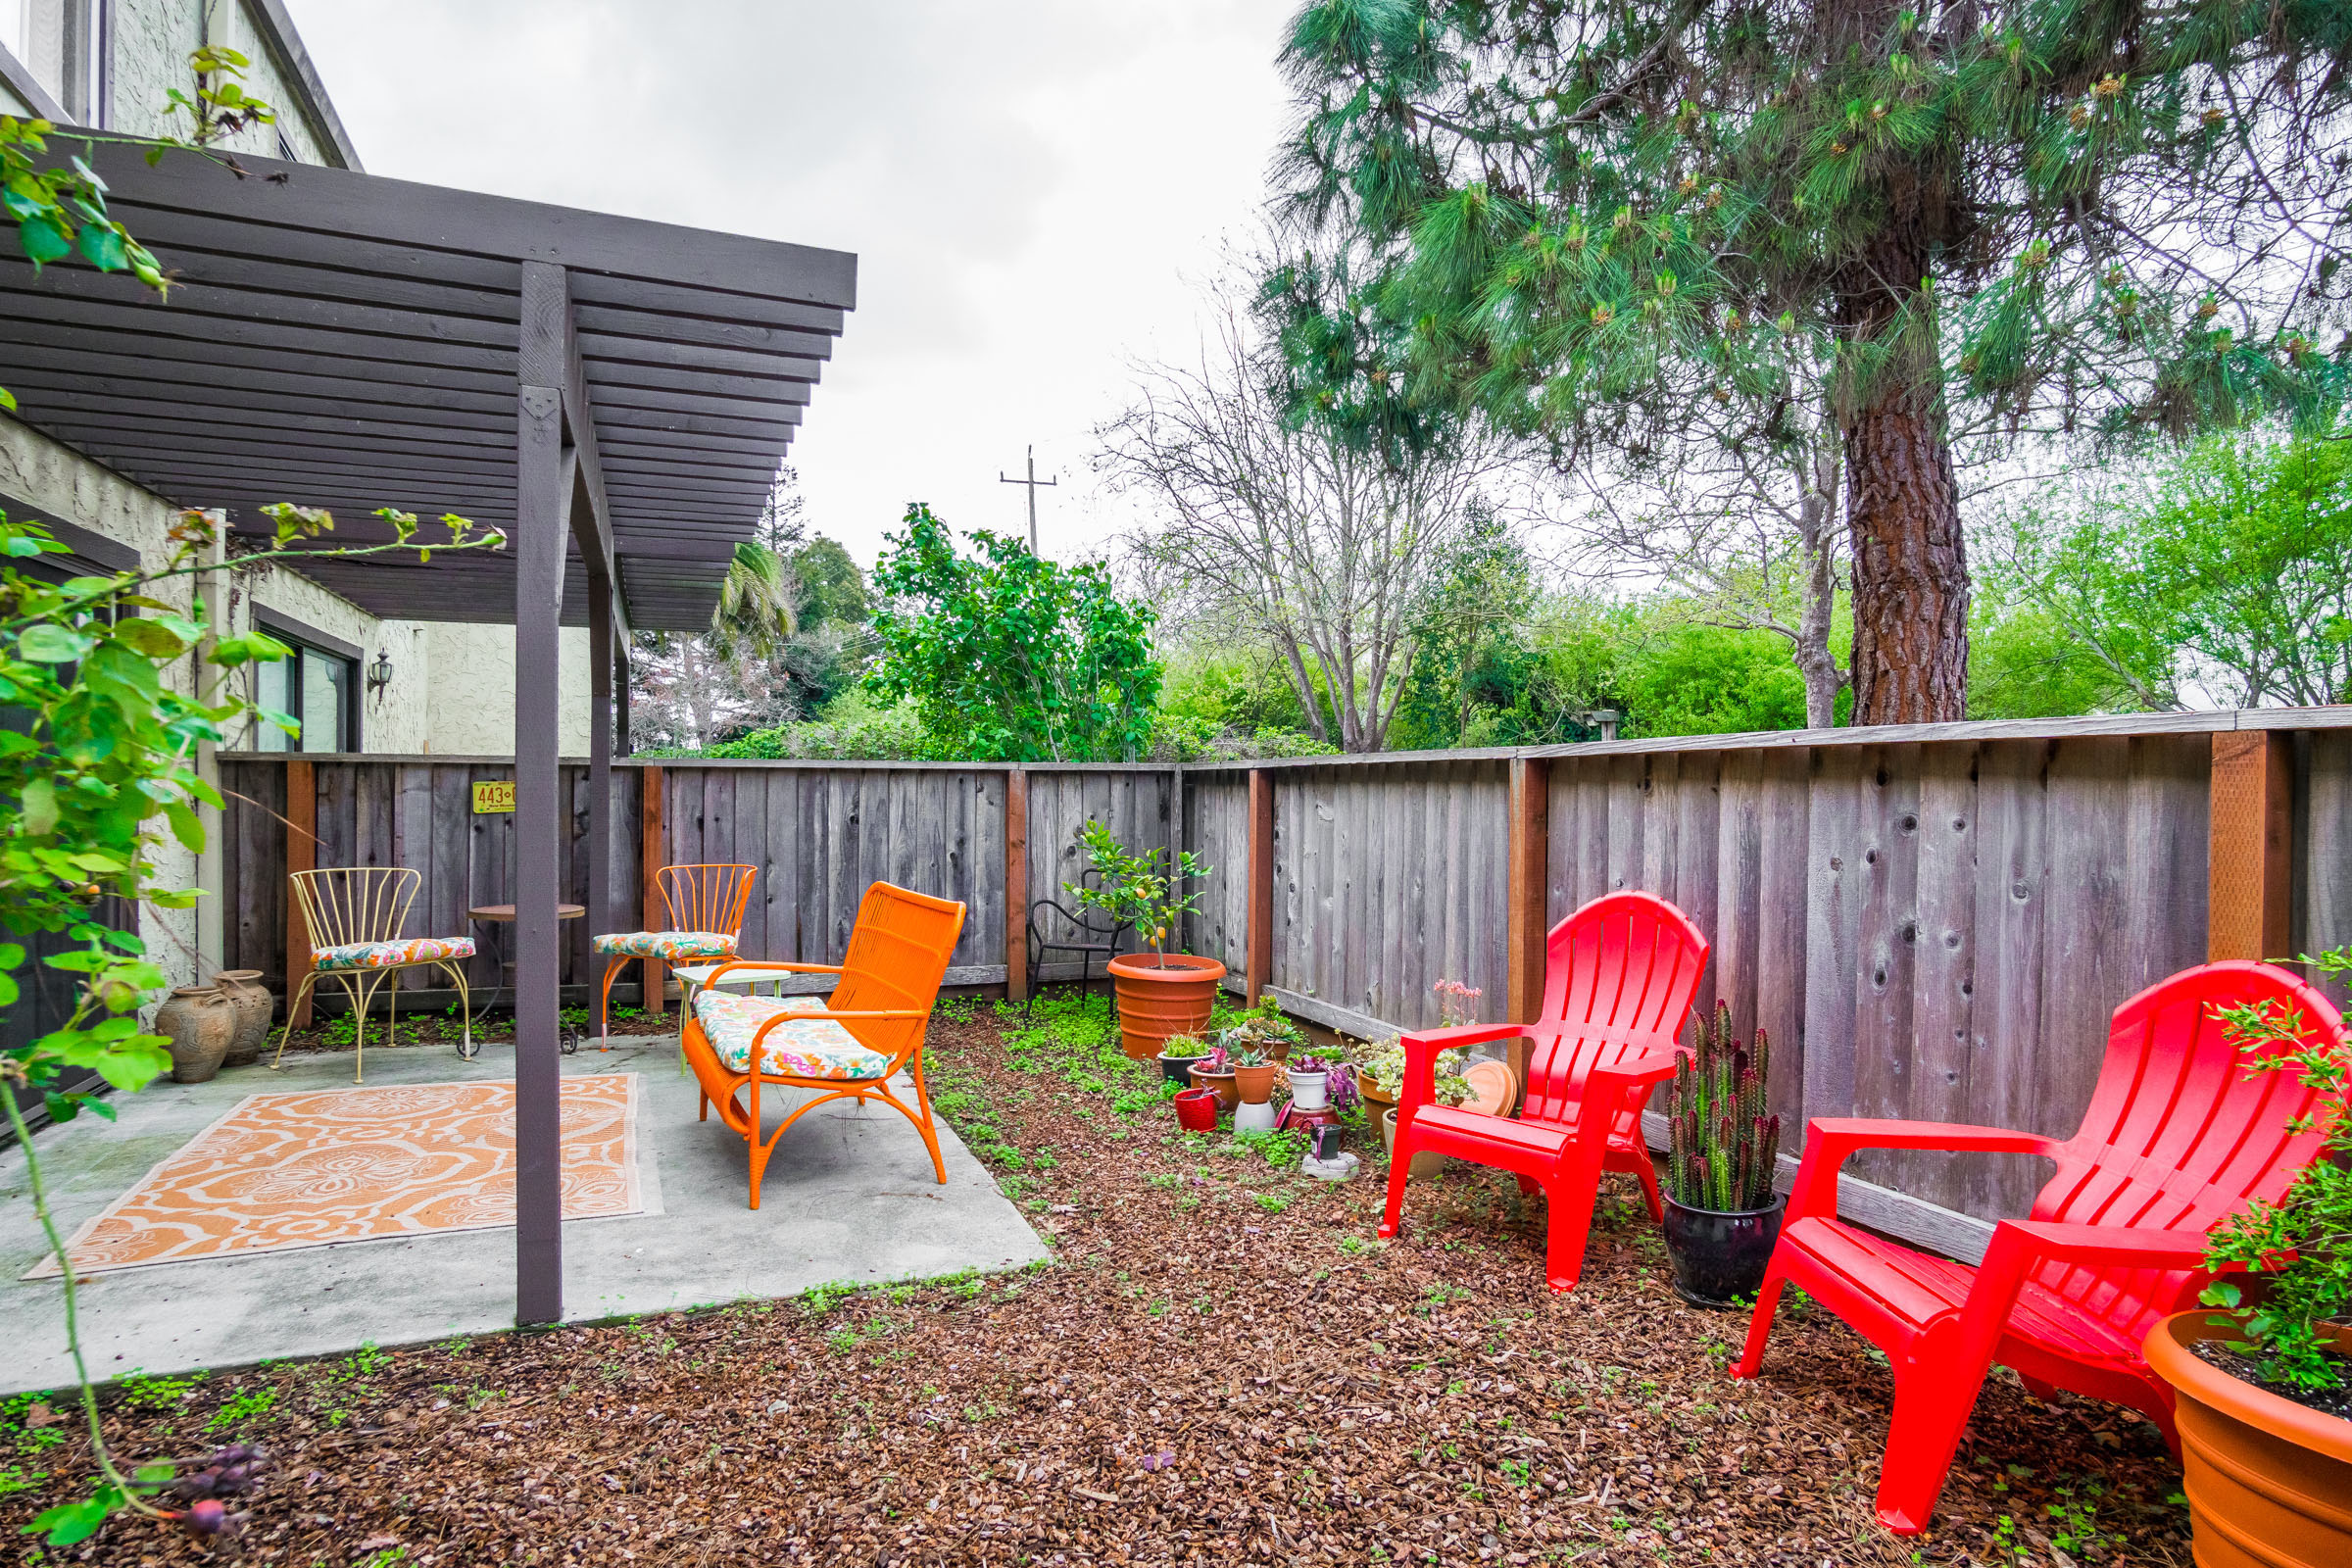 3 Beds & Laundry Room Condo In Westside